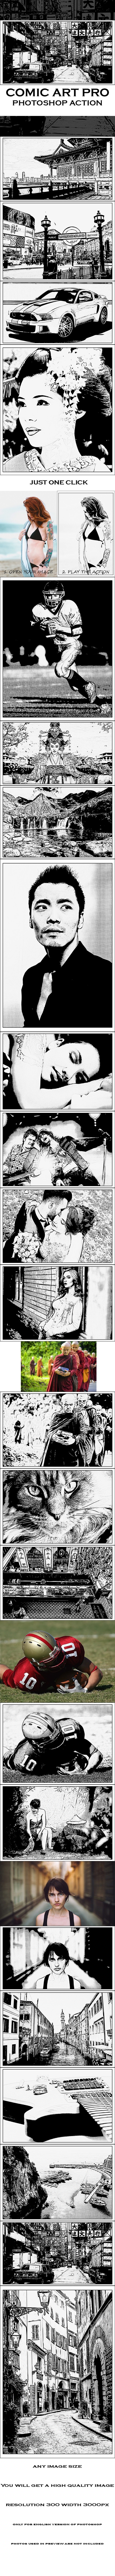 Comic Art Pro - Photo Effects Actions